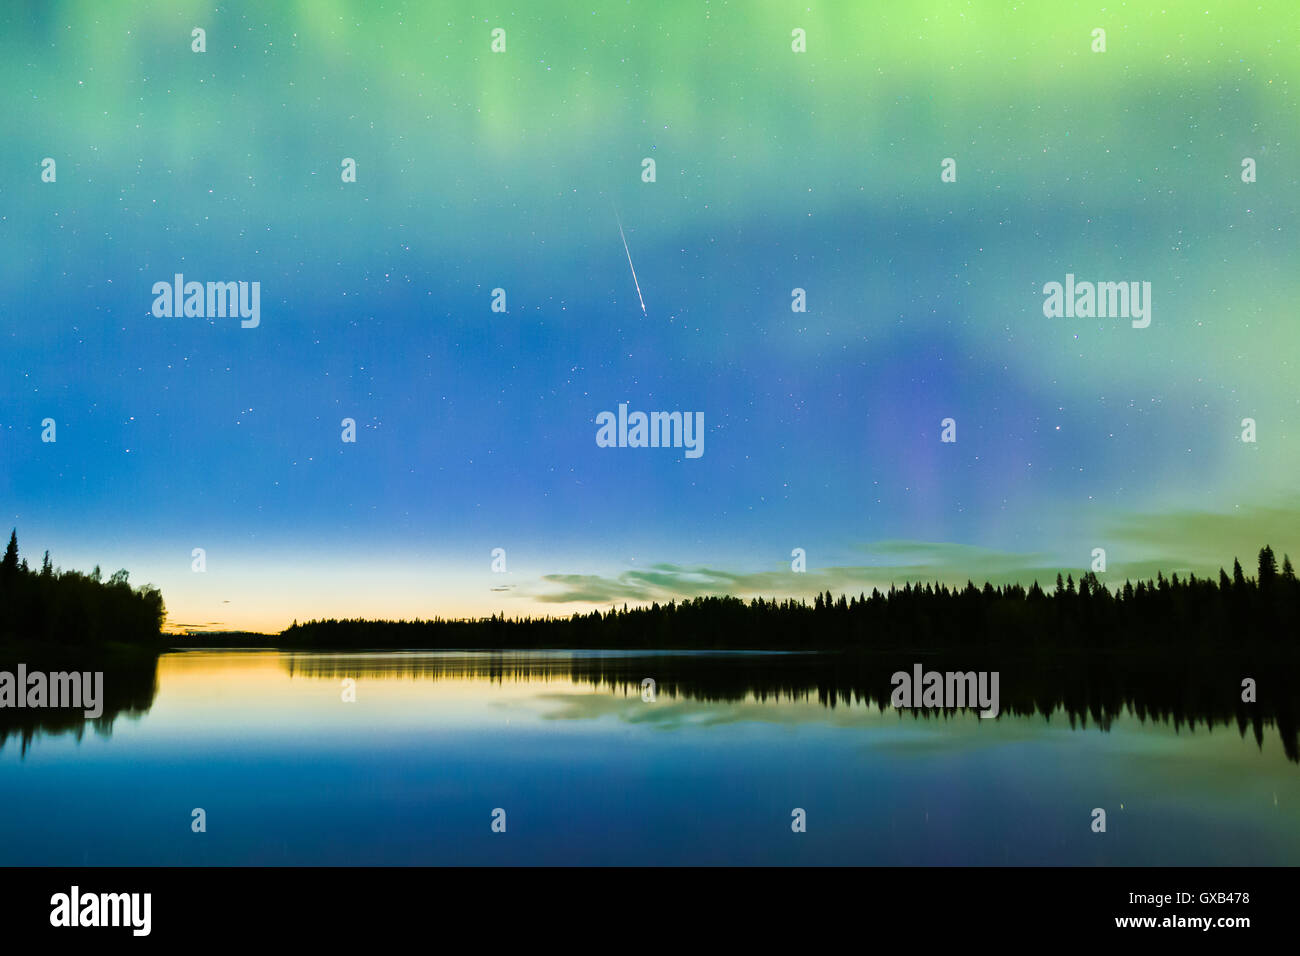 Shooting star and Northern lights on the sky - Stock Image